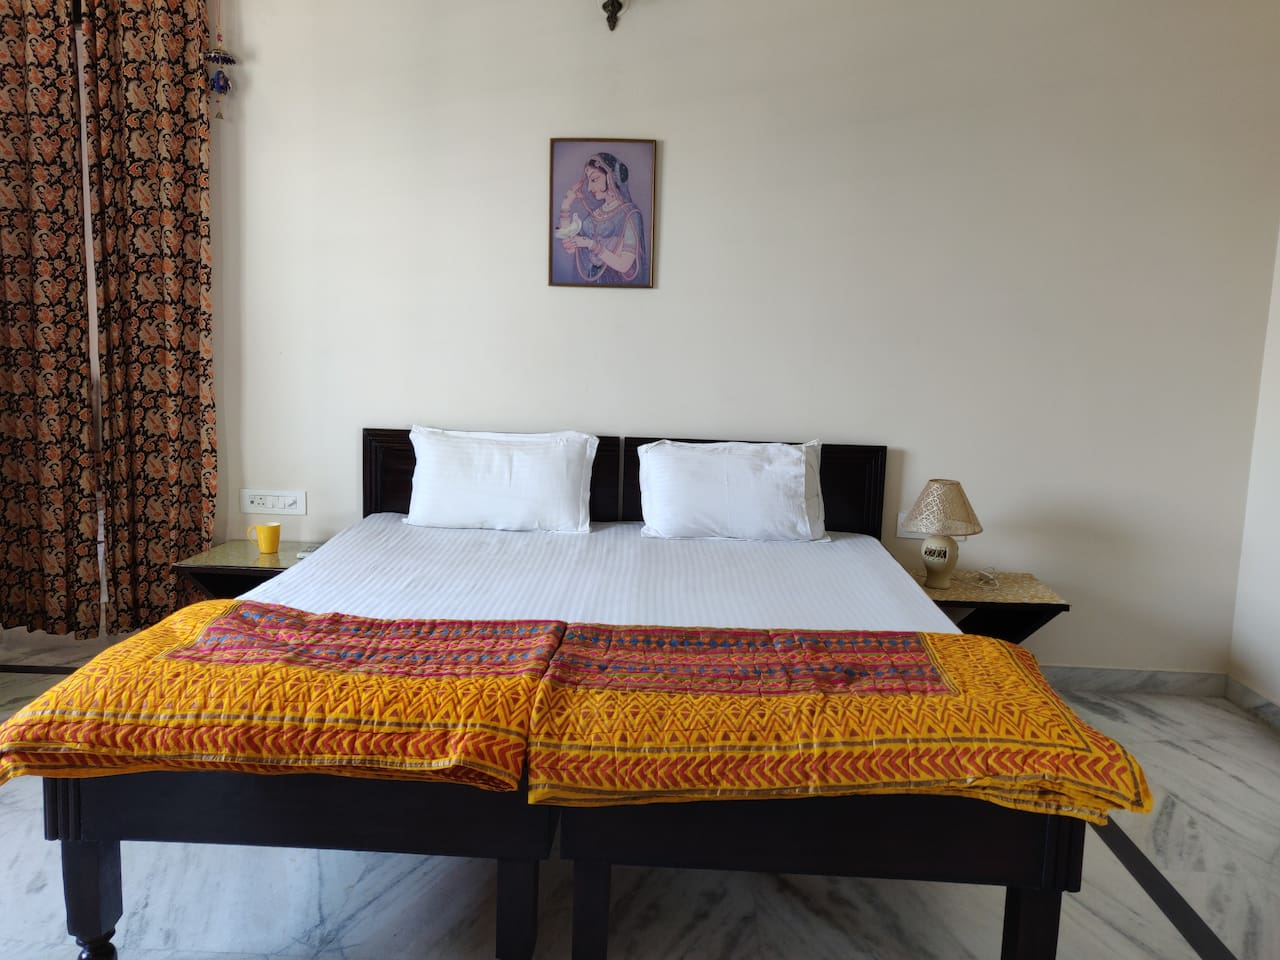 Spacious, clean and tidy bedroom with ethnic linen.